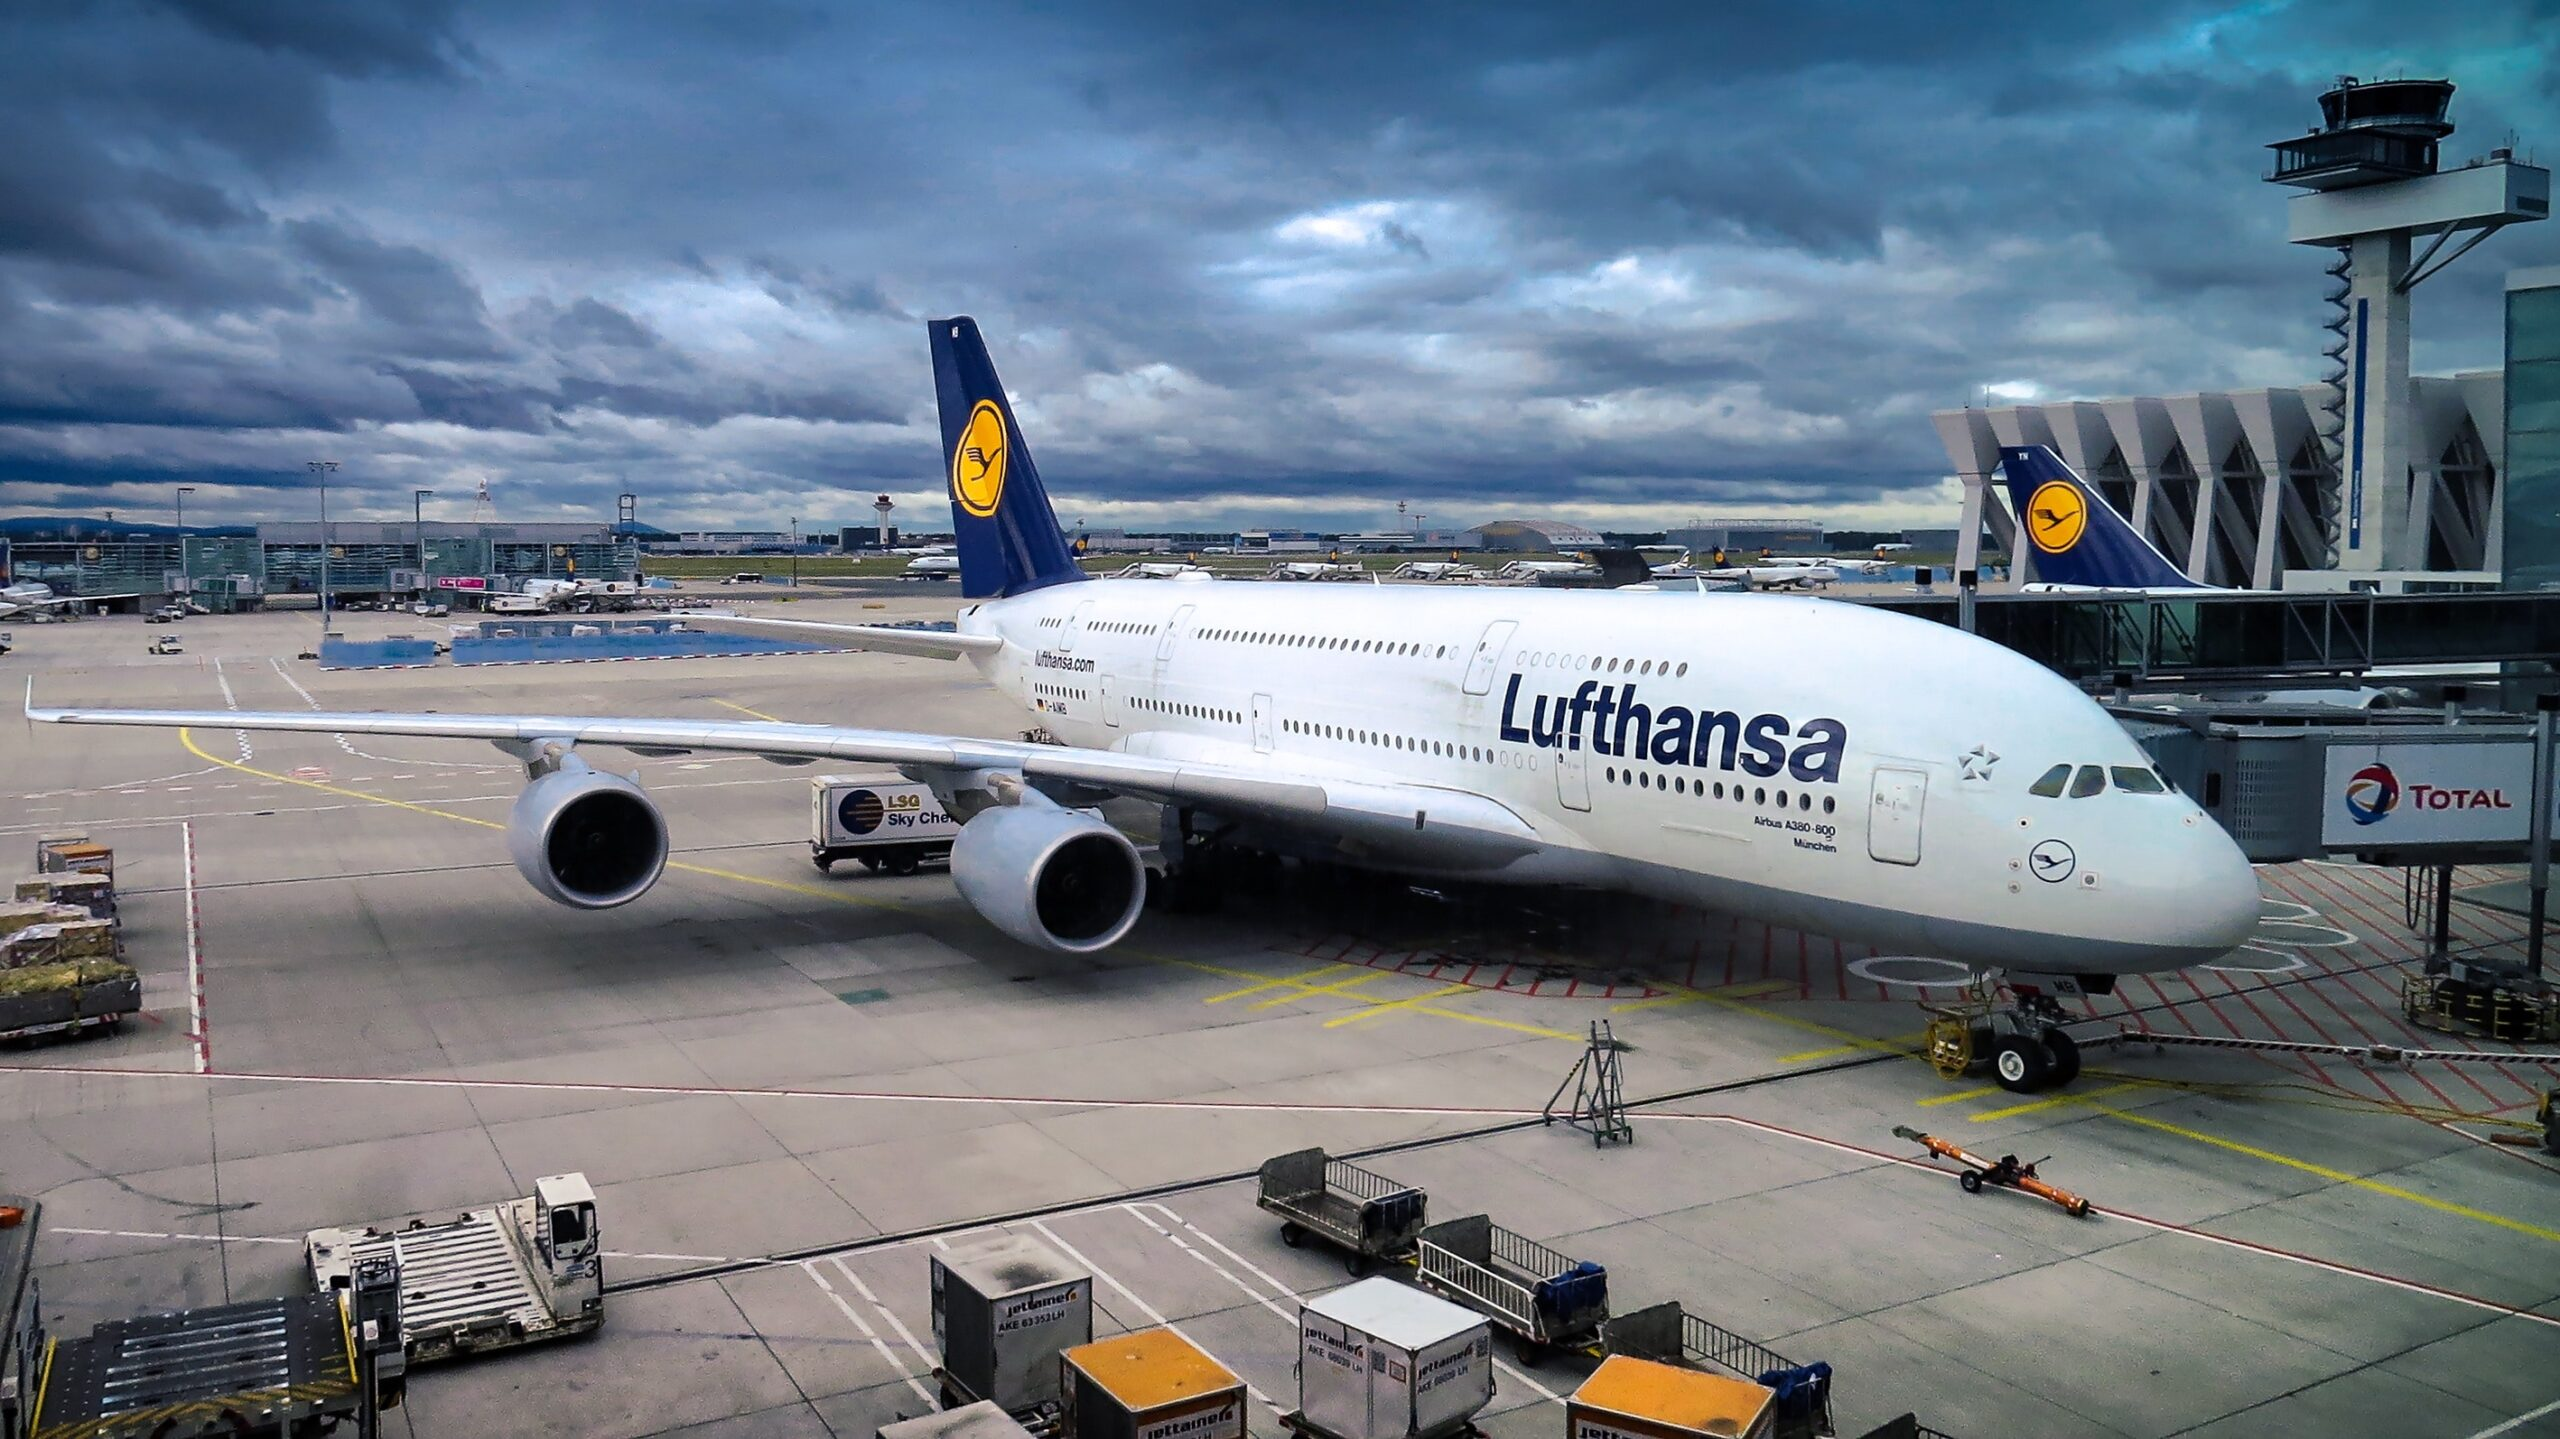 Lufthansa on gate